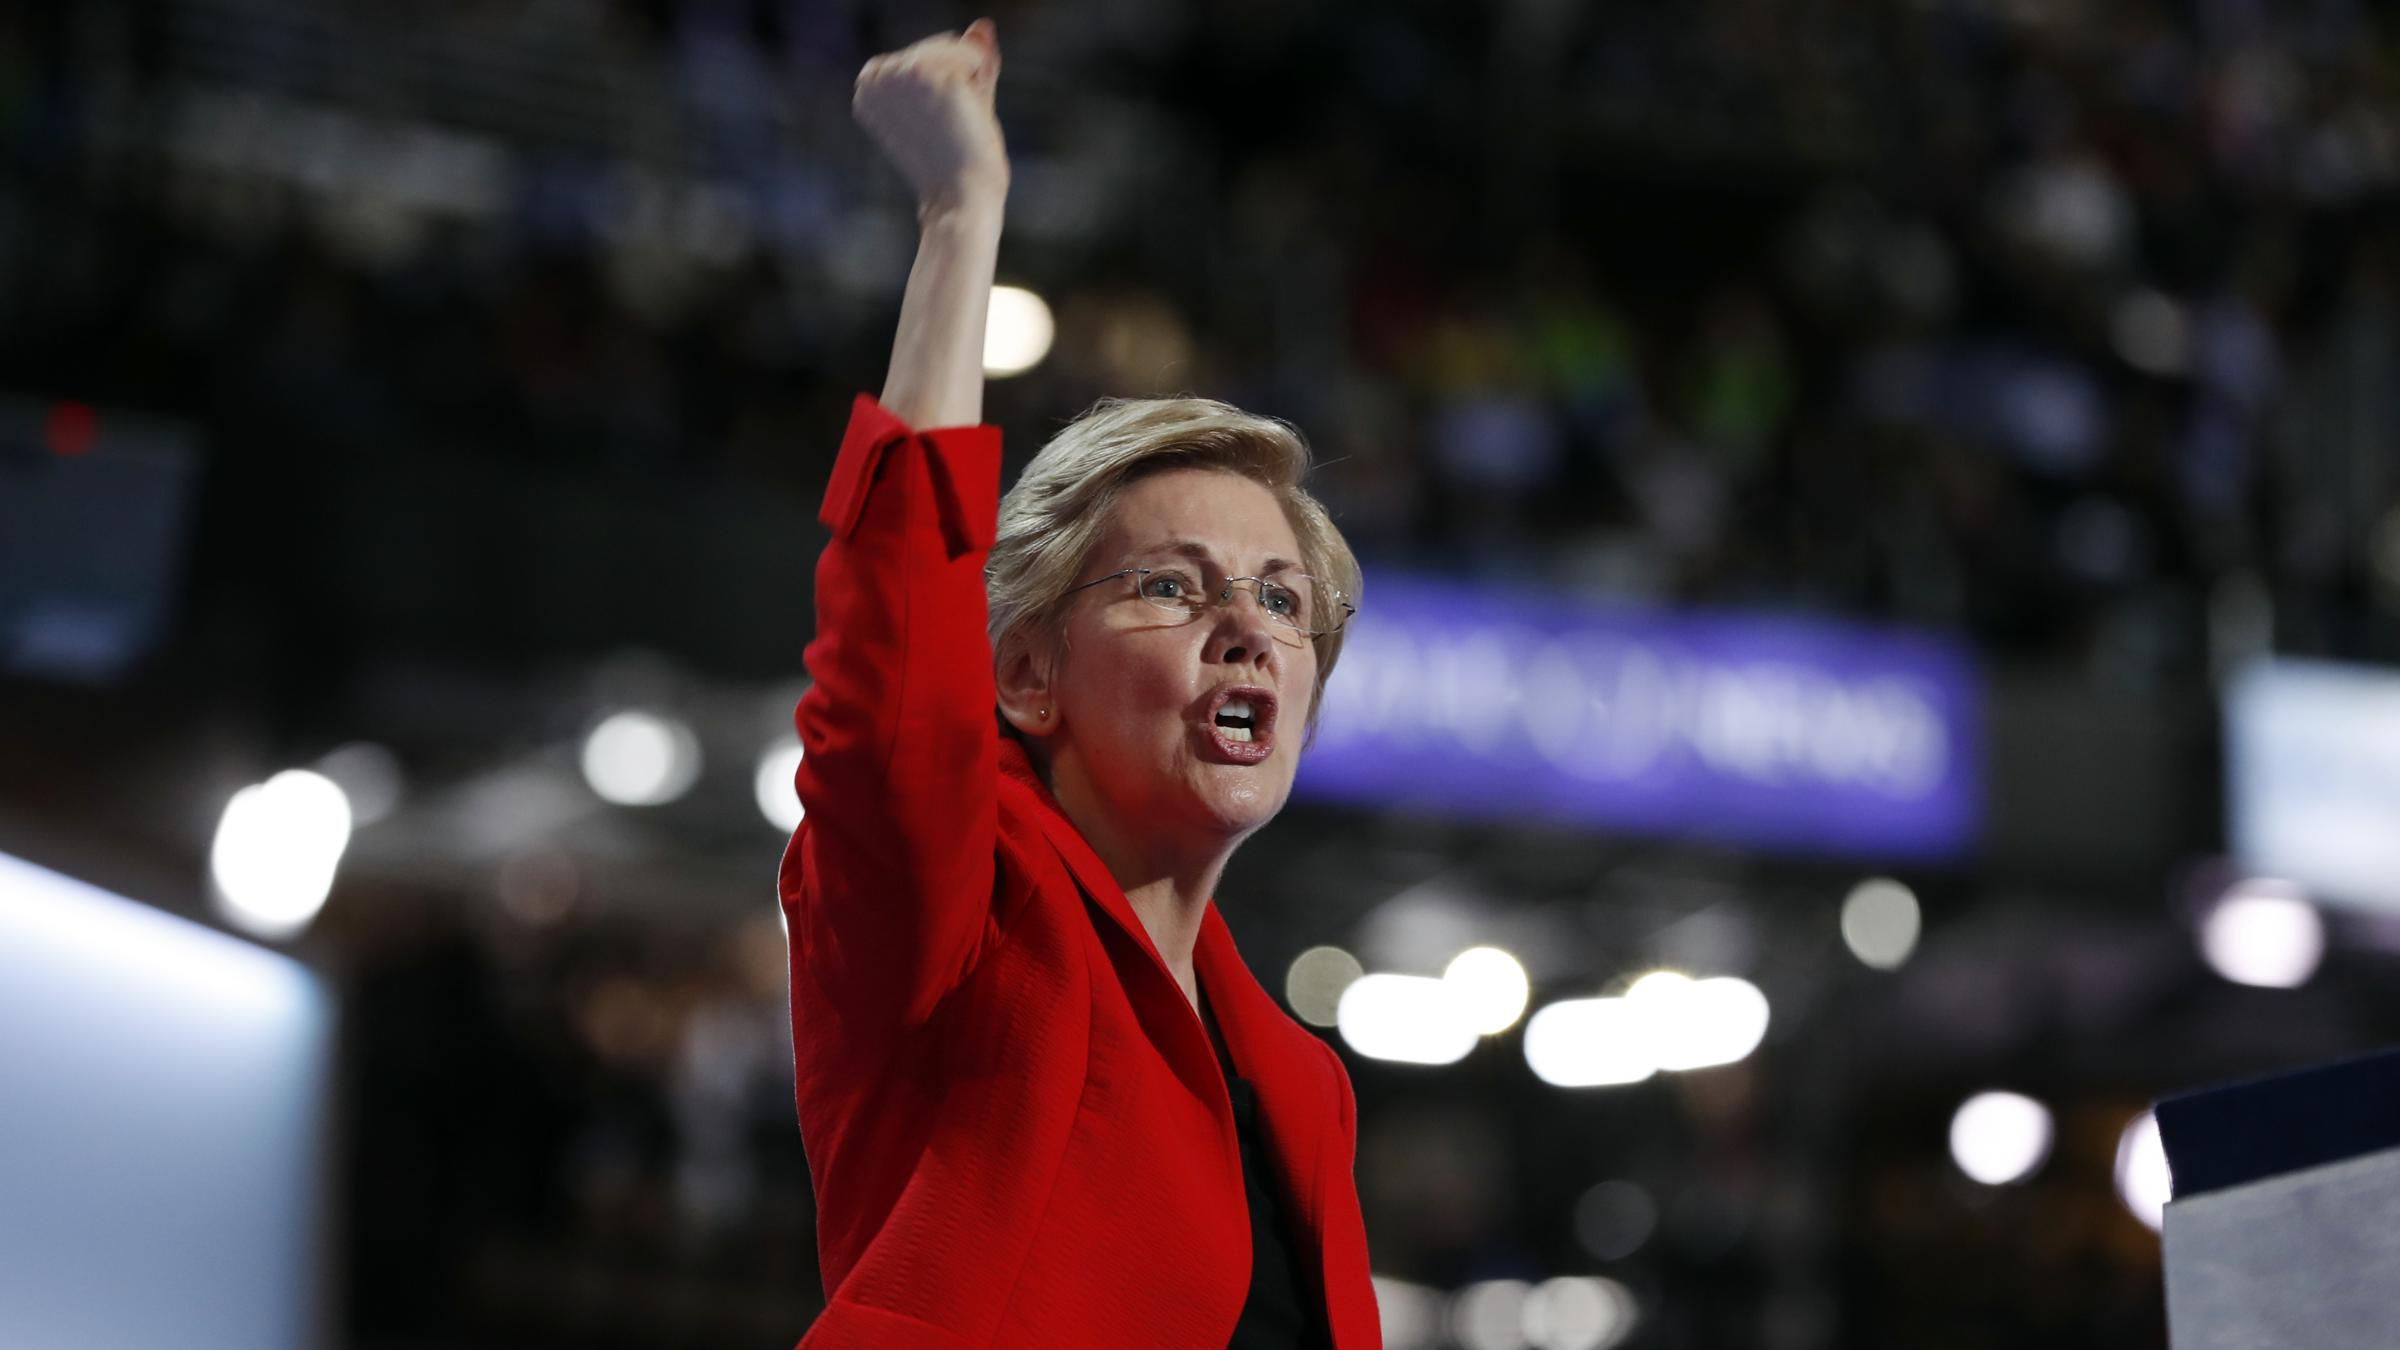 Elizabeth Warren takes major step toward running for president